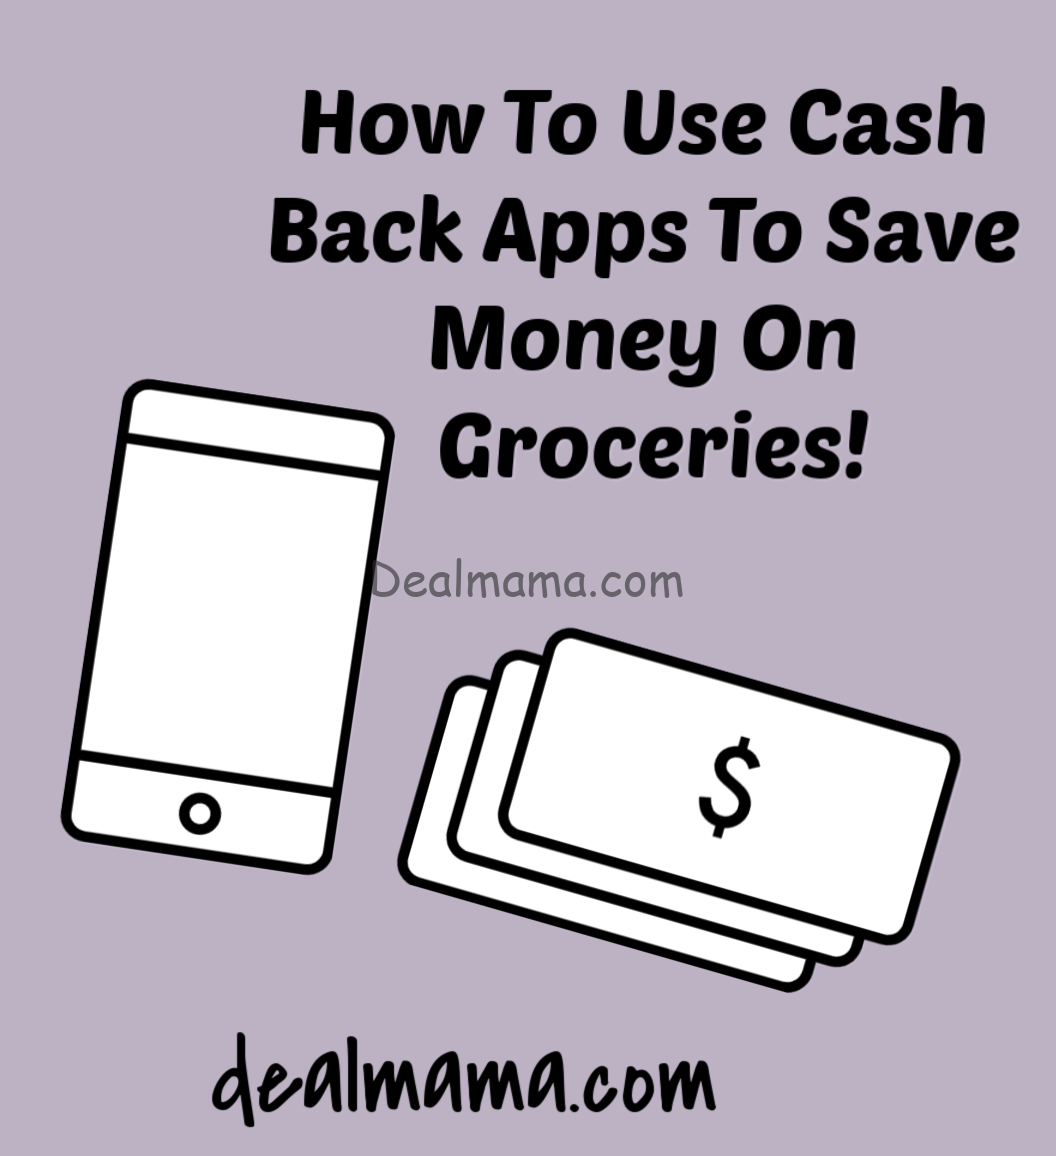 How To Use Cash Back Apps To Save Money On Groceries!